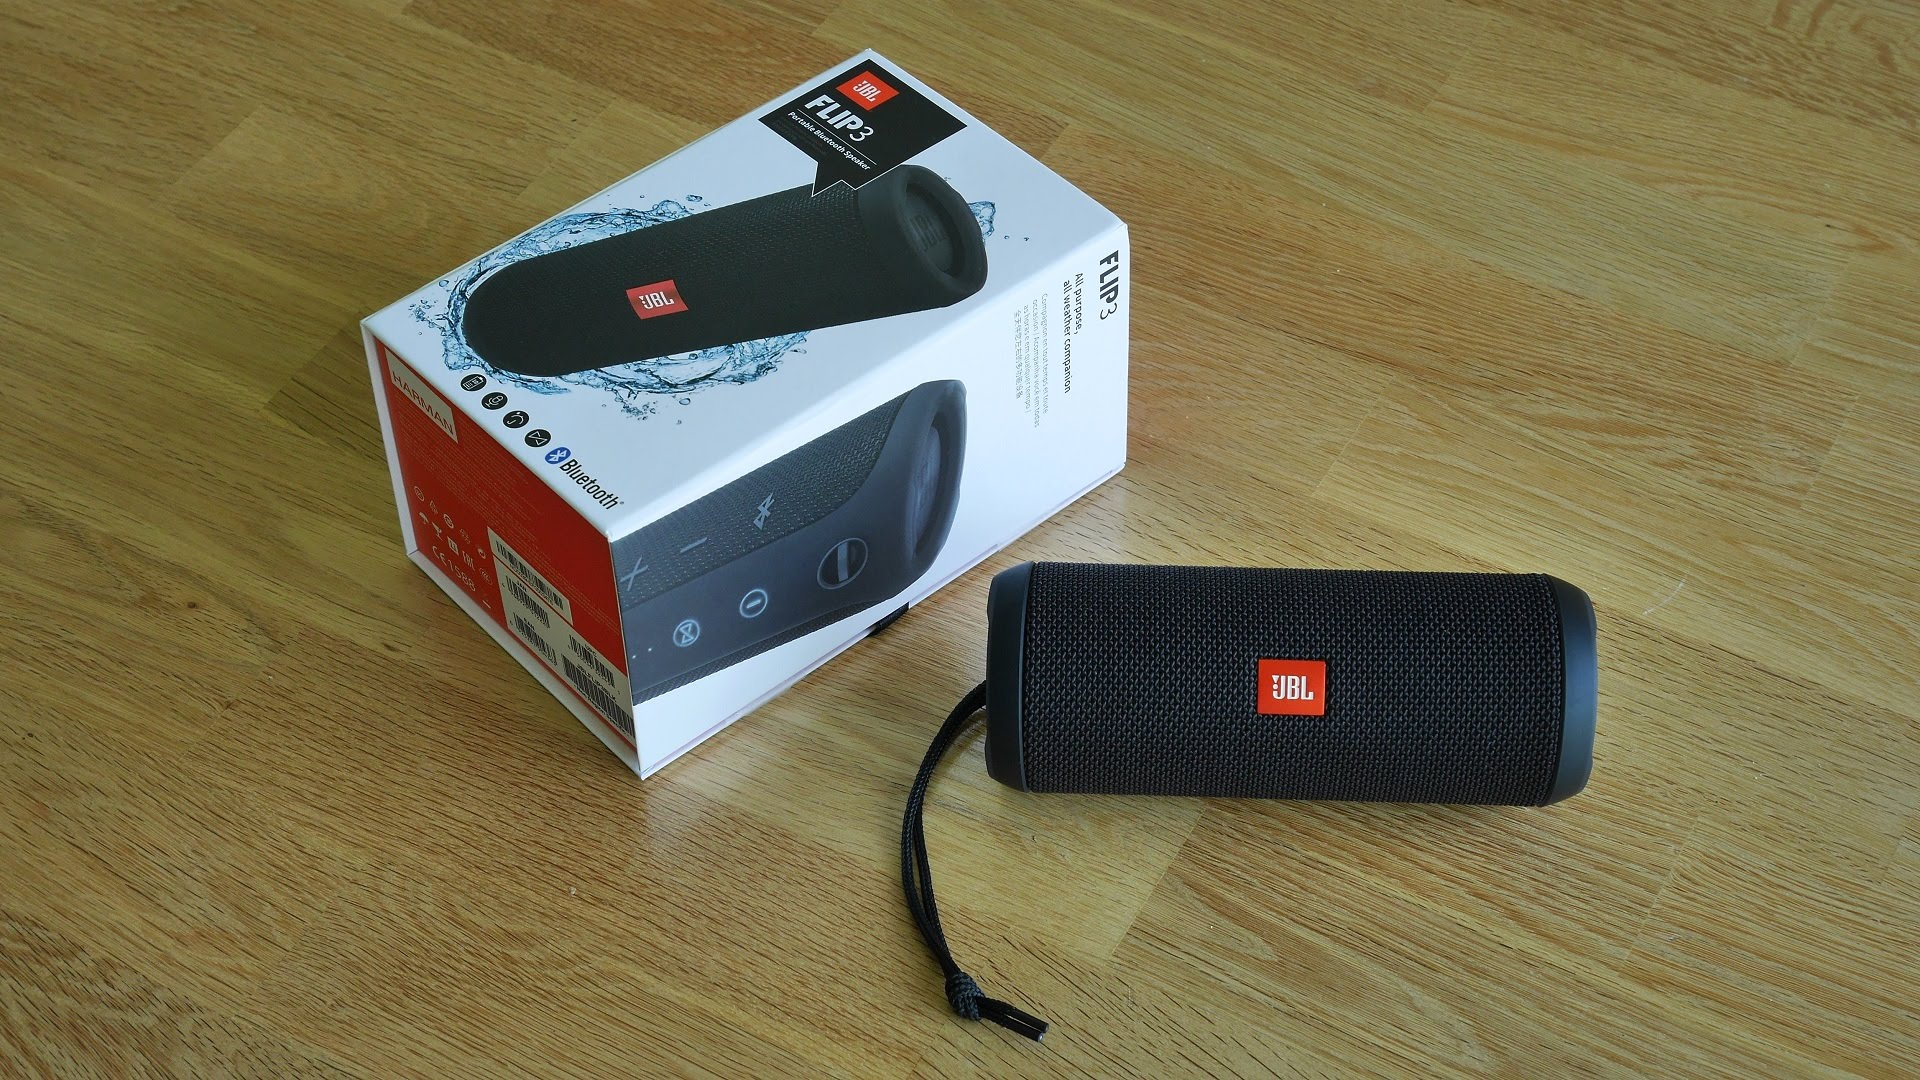 Daily Deal: Bag yourself a JBL Flip 3 for 16% off - SamMobile